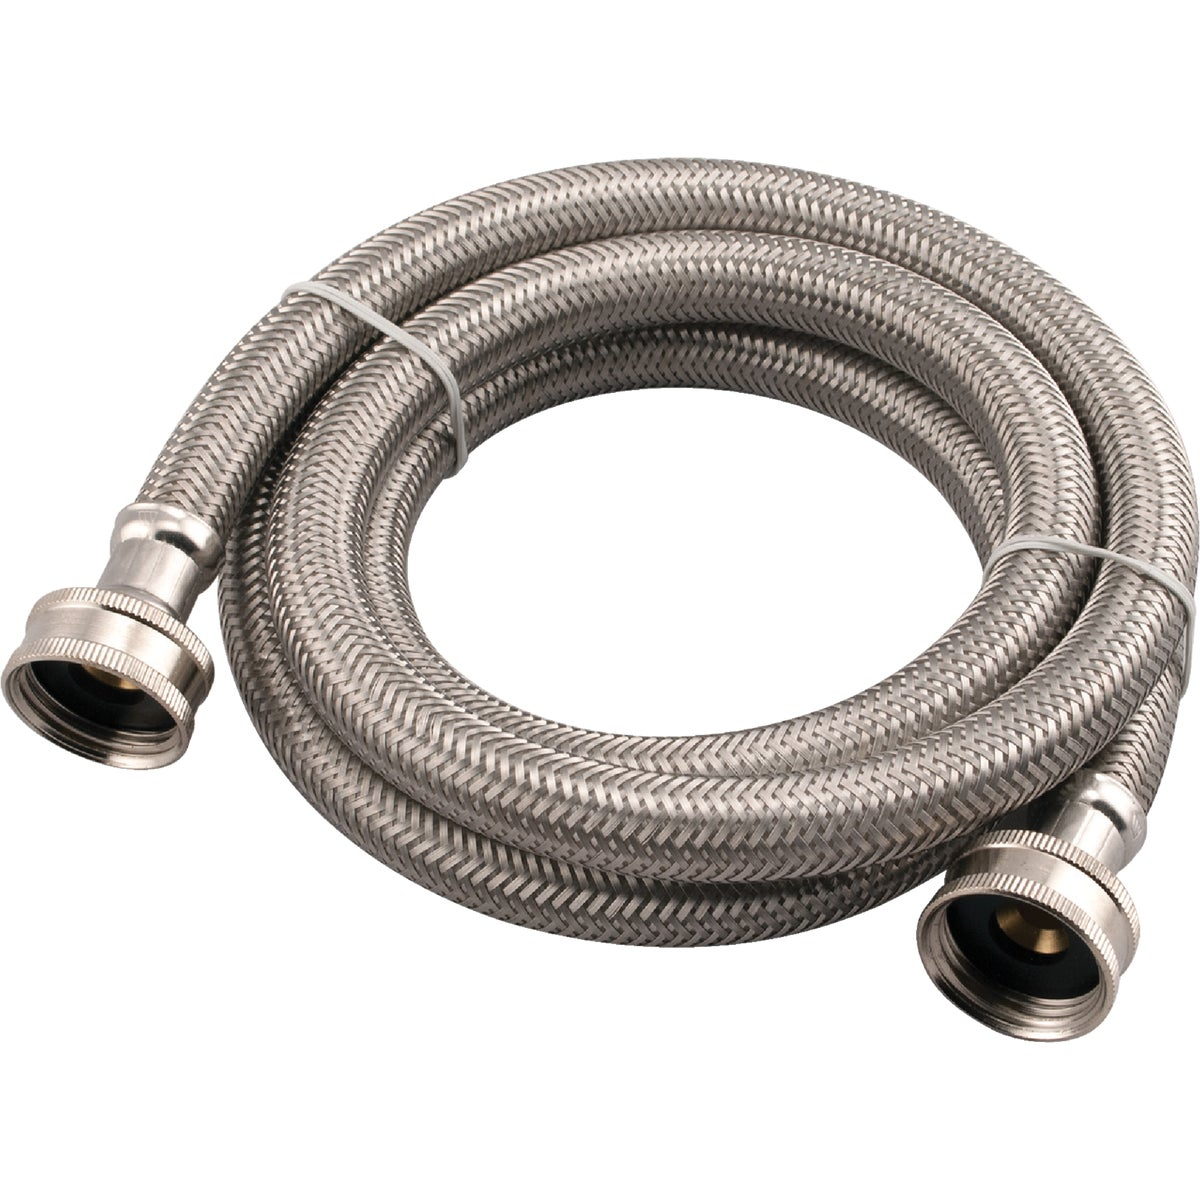 "60"" WASHING MACHINE HOSE - 431796 by Watts Regulator Co"